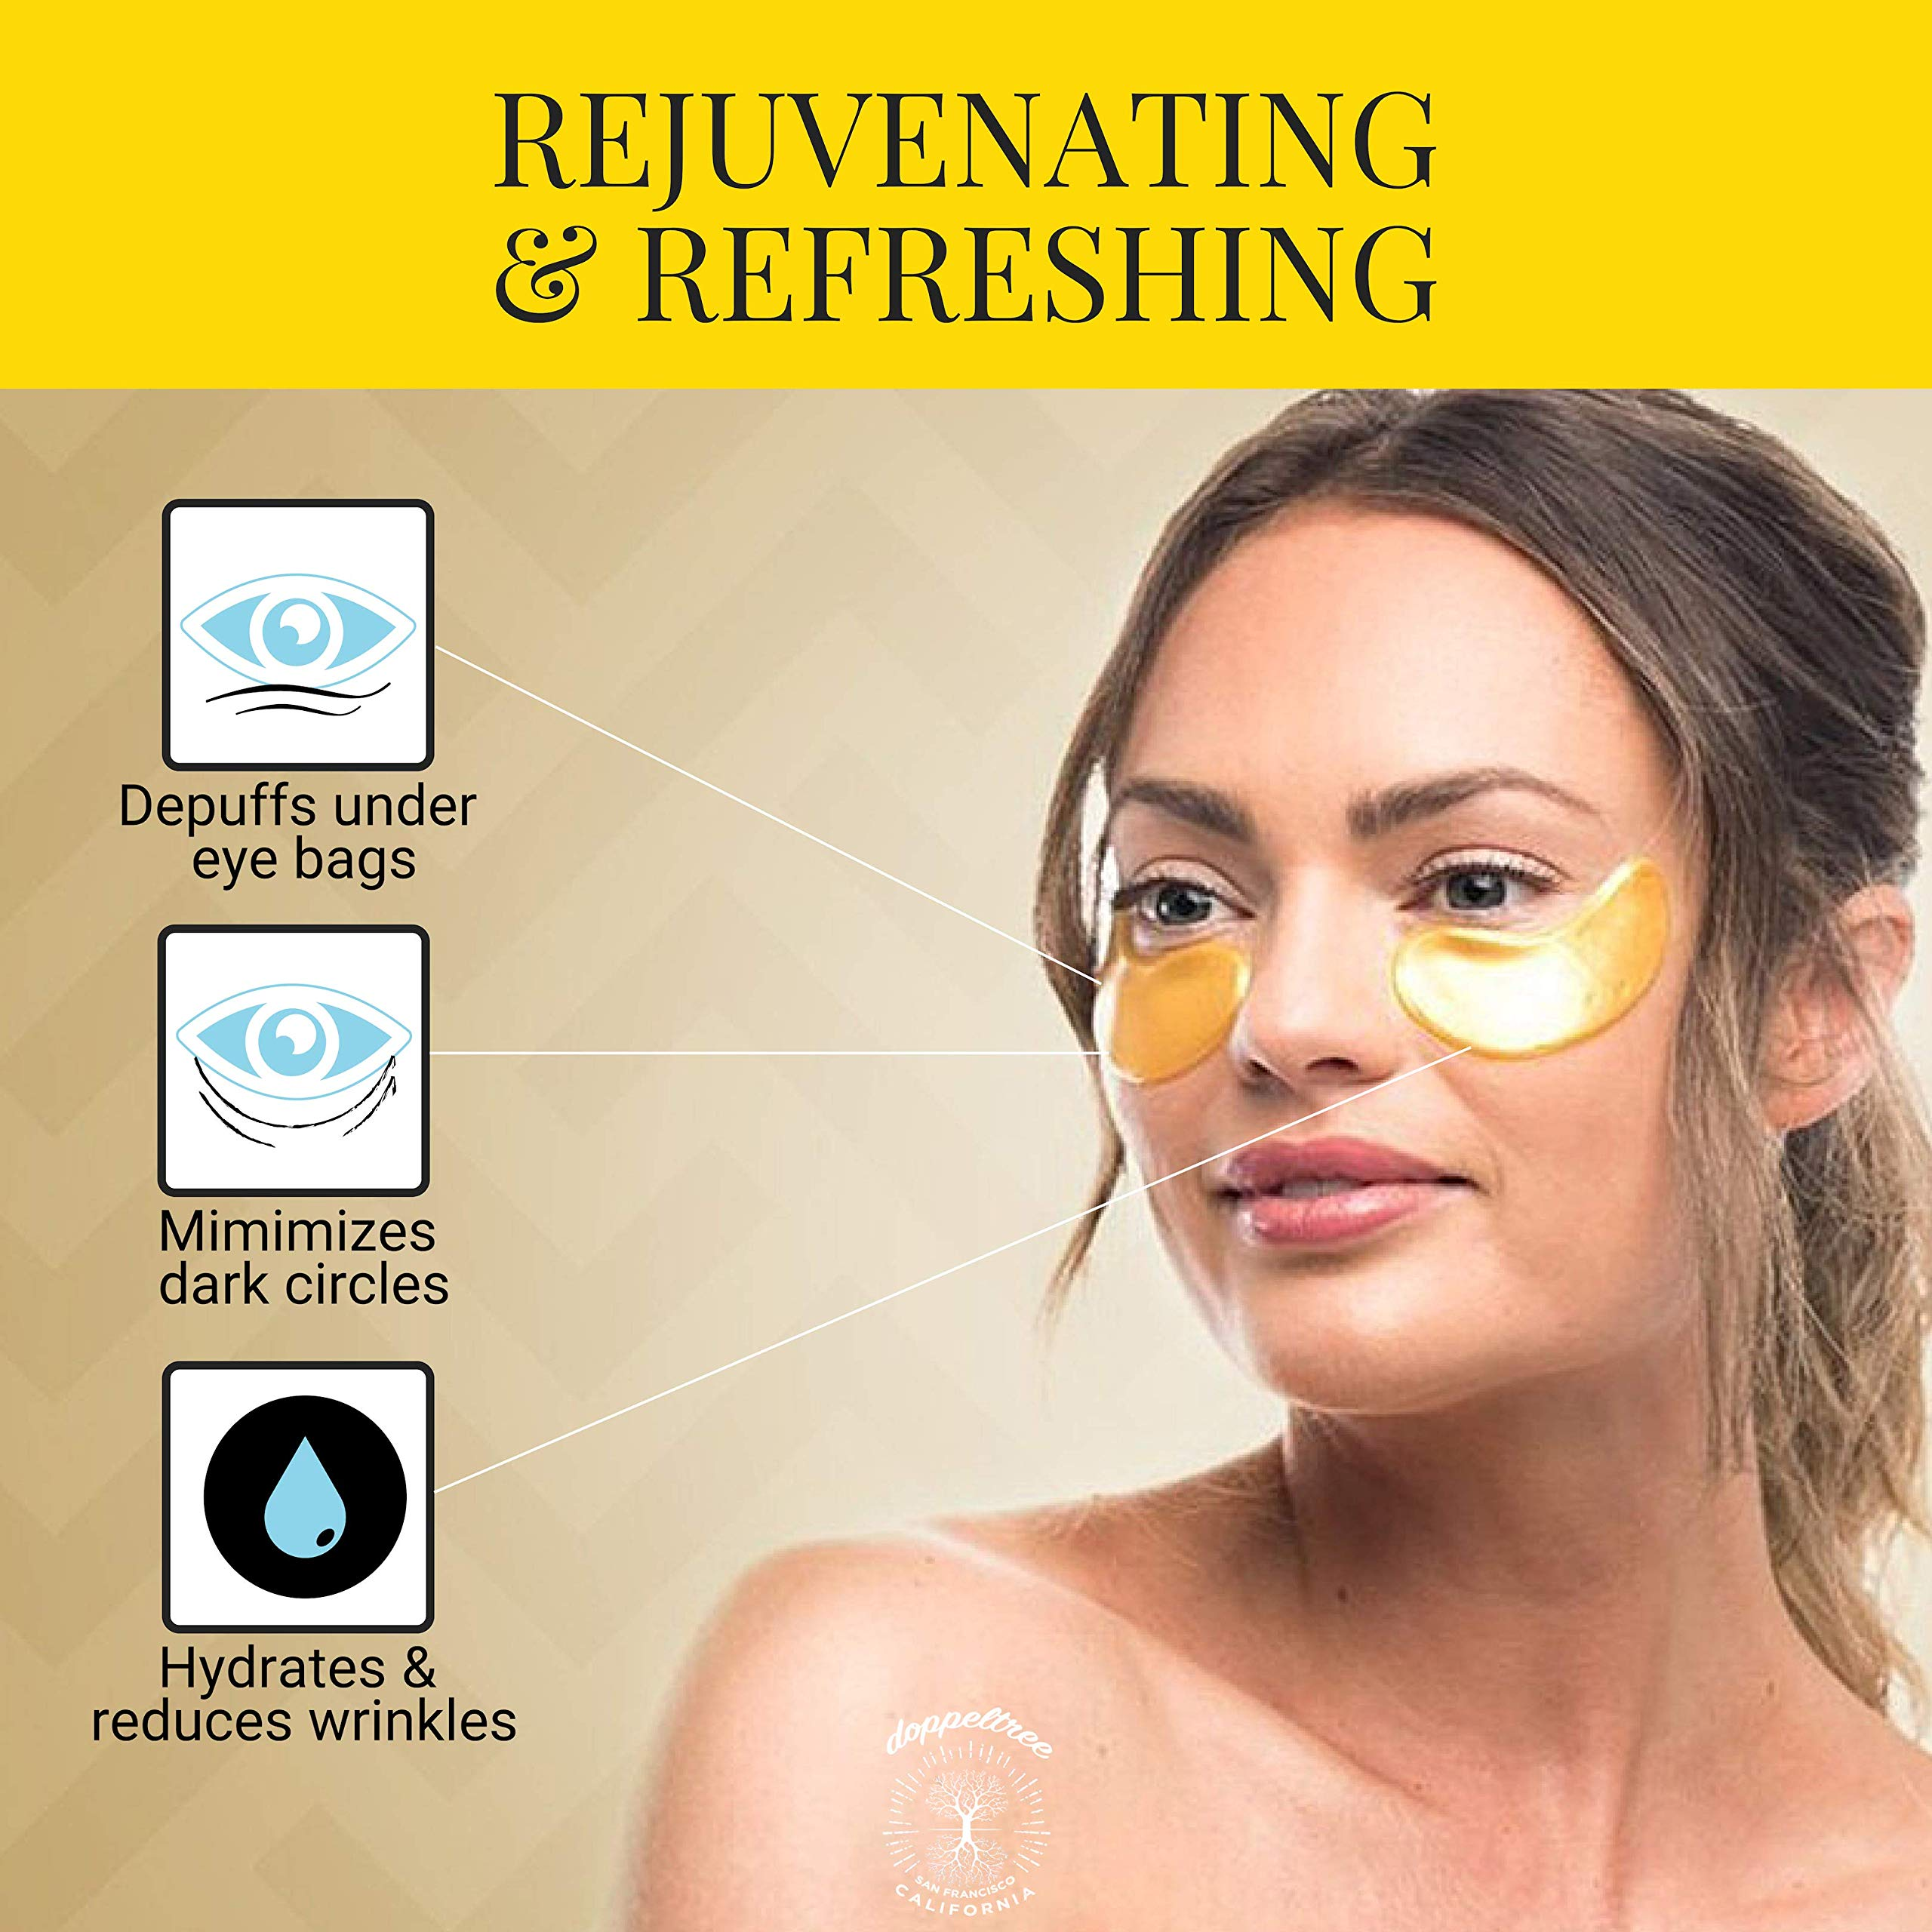 (18 Pairs) All Natural Under Eye Patches & Masks | Best Treatment for Bags & Puffiness, Wrinkles and Dark Circles | 24K Gold, Anti Aging Collagen, Hyaluronic Acid, Hydrogel | Designed in San Francisco by Doppeltree (Image #3)